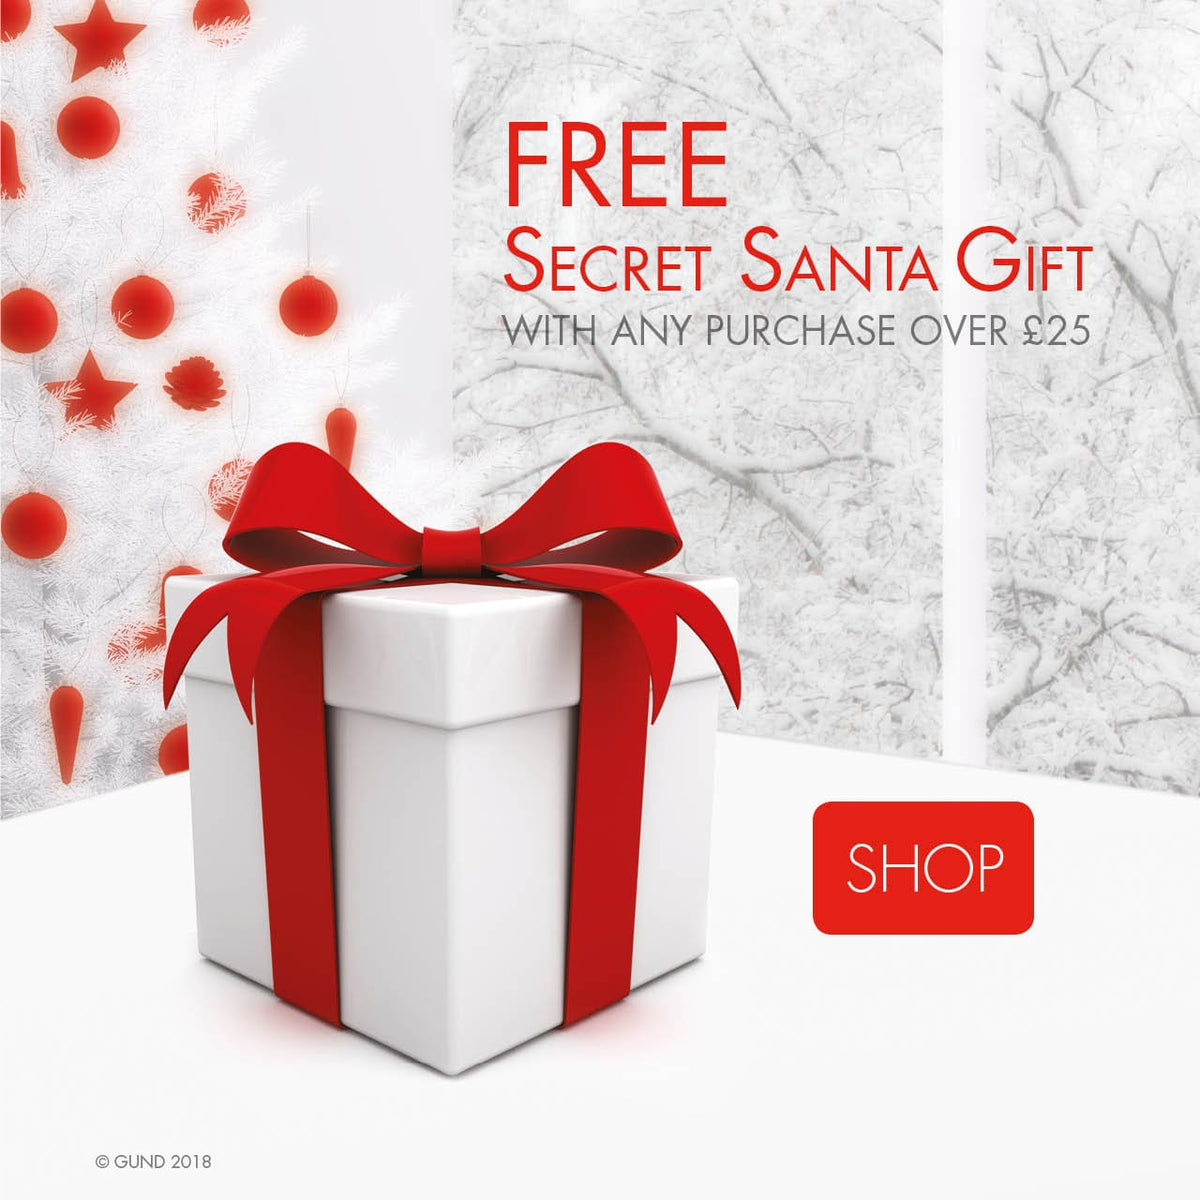 Free Secret Santa Gift with purchases over £25